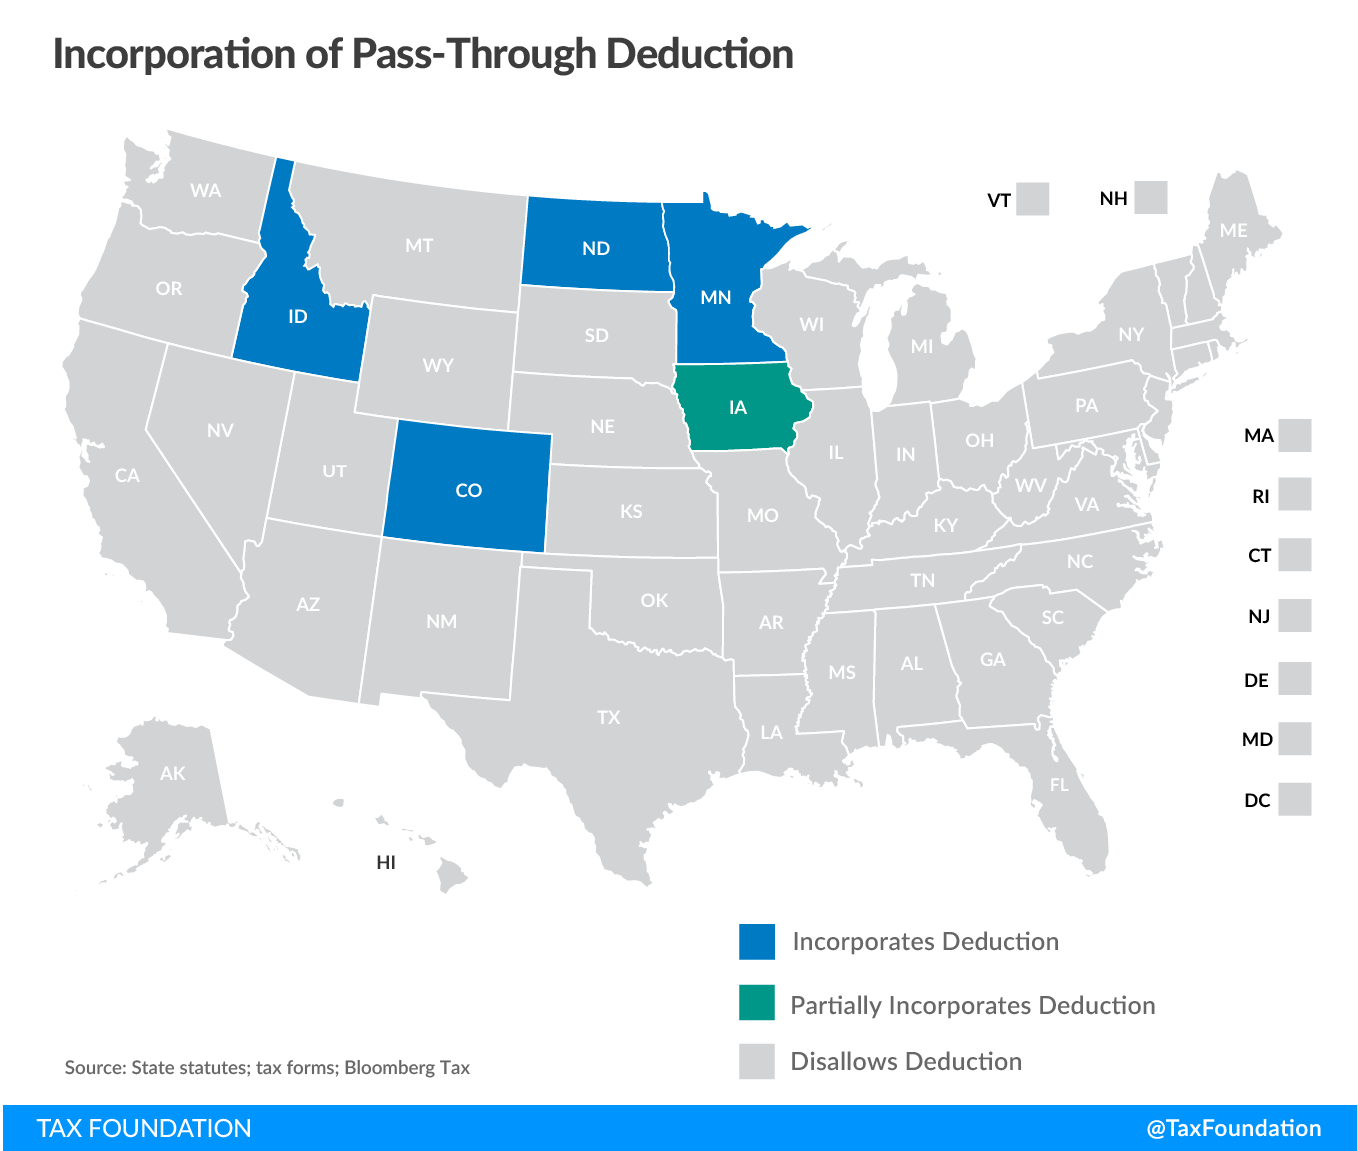 Small business expensing and pass-through deduction state tax conformity post-TCJA